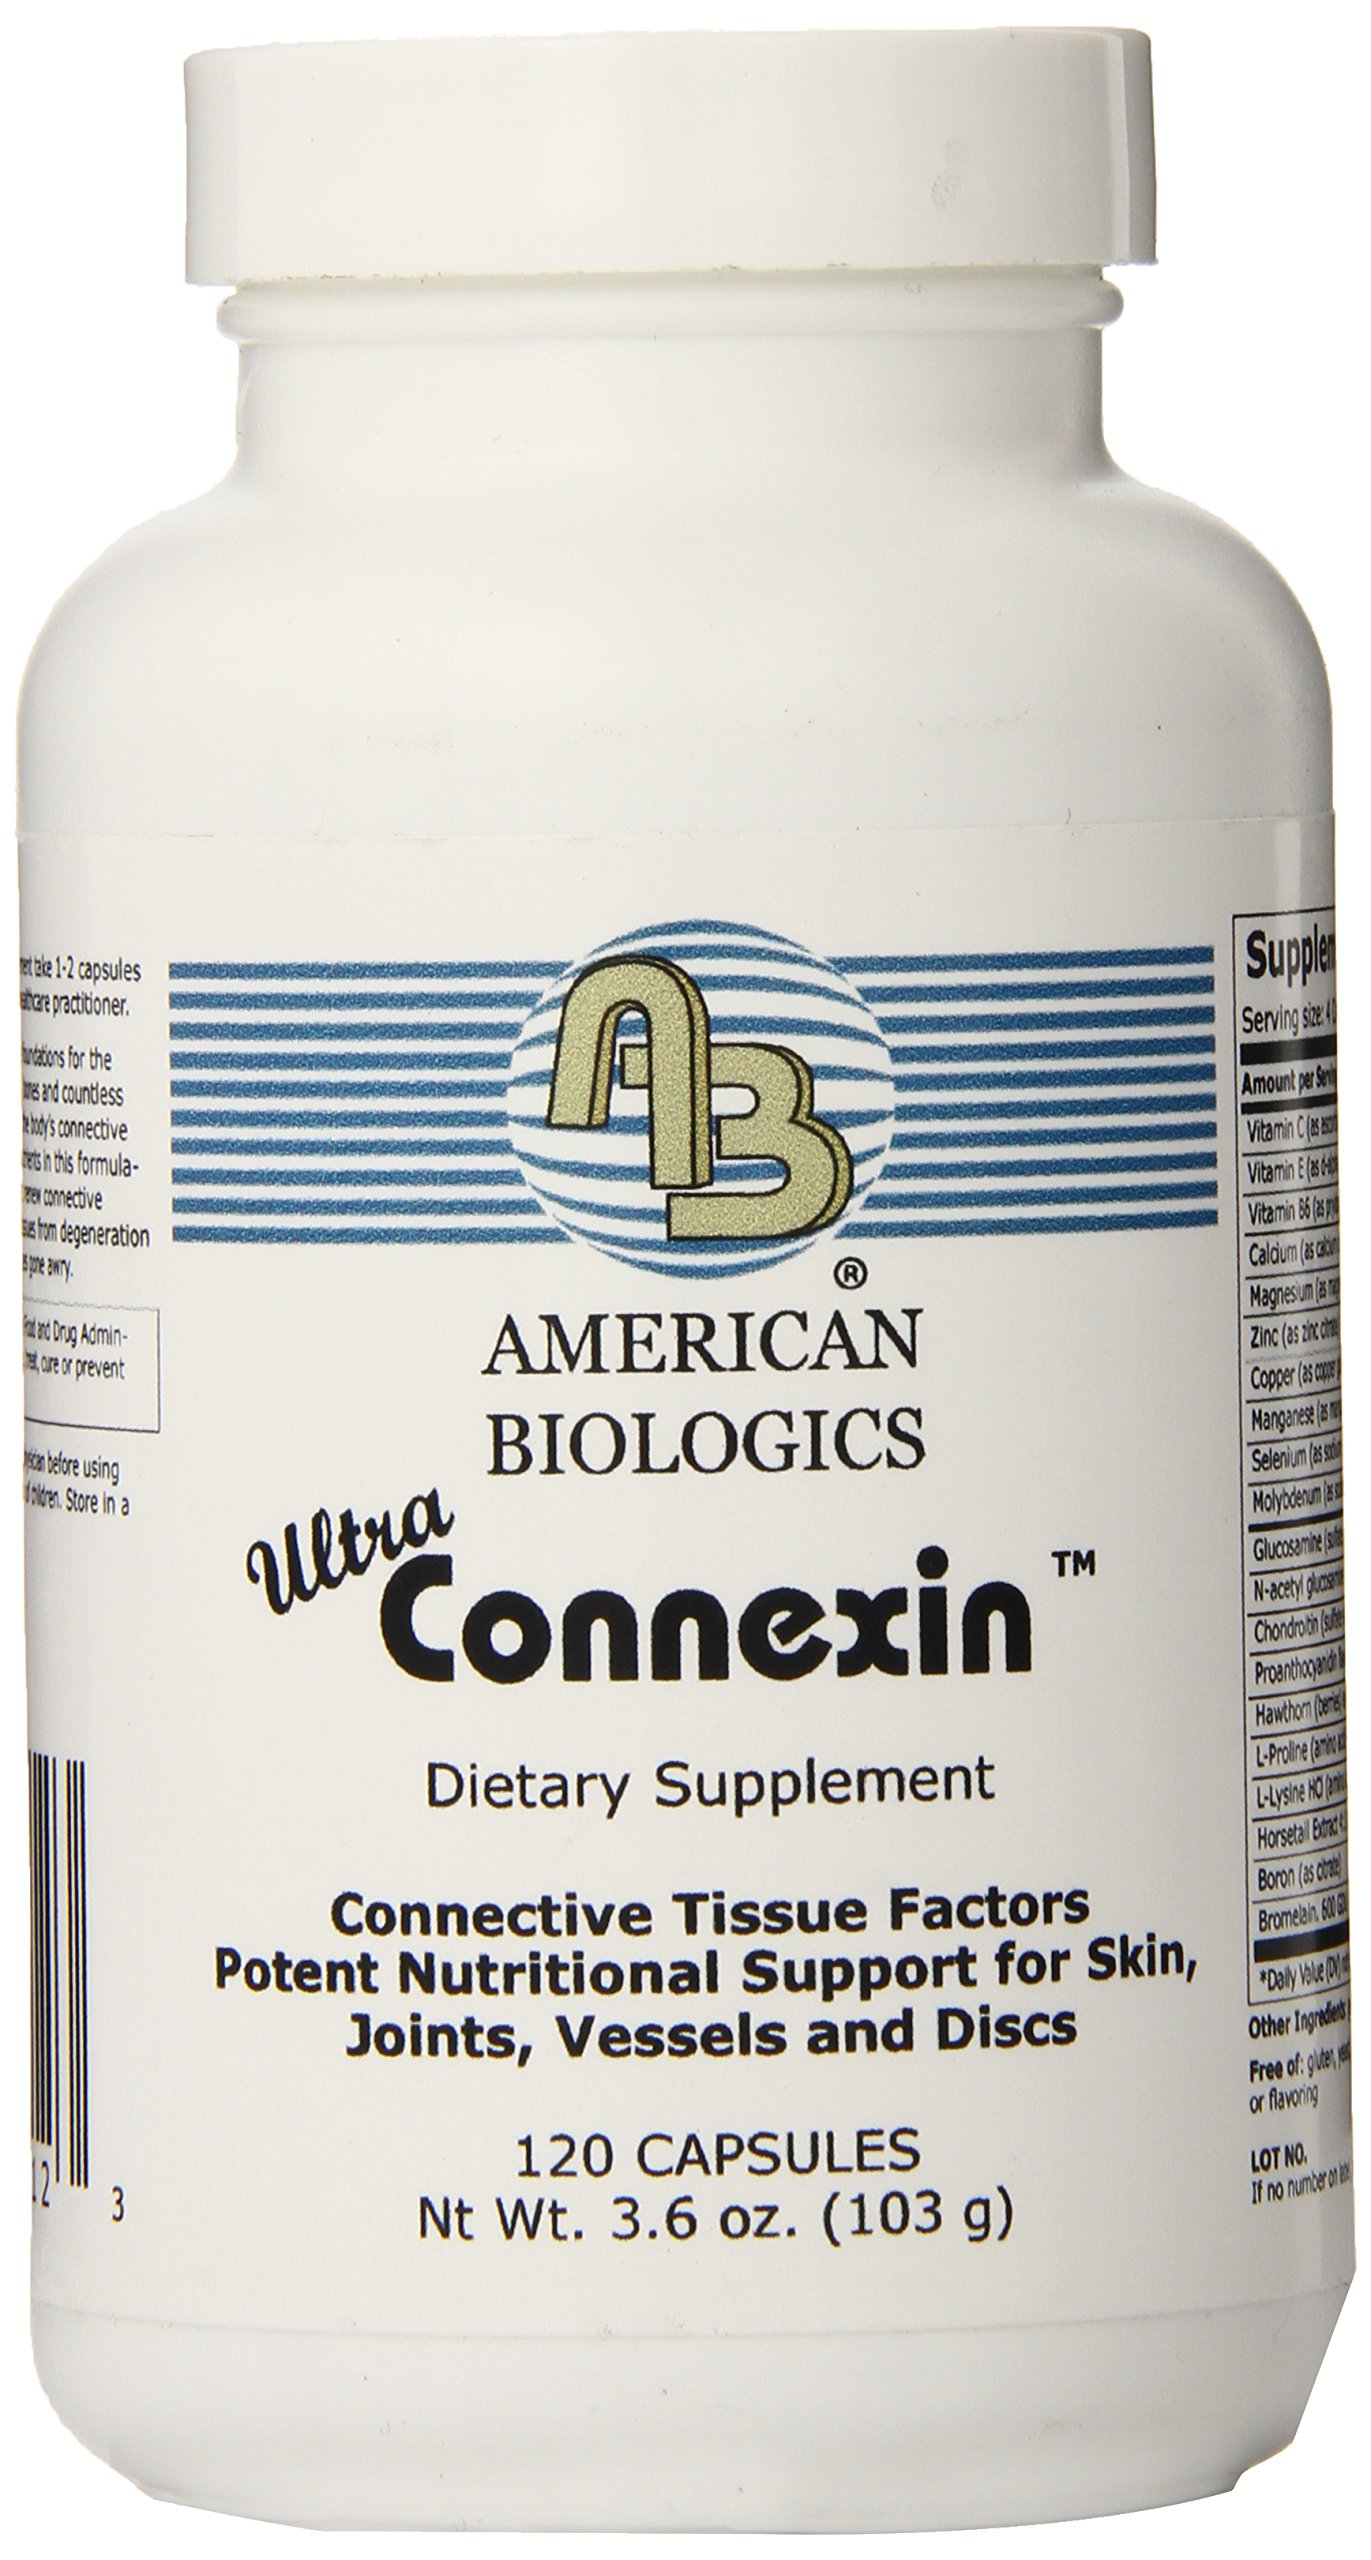 American Biologics Connexin Capsules, 120 Count